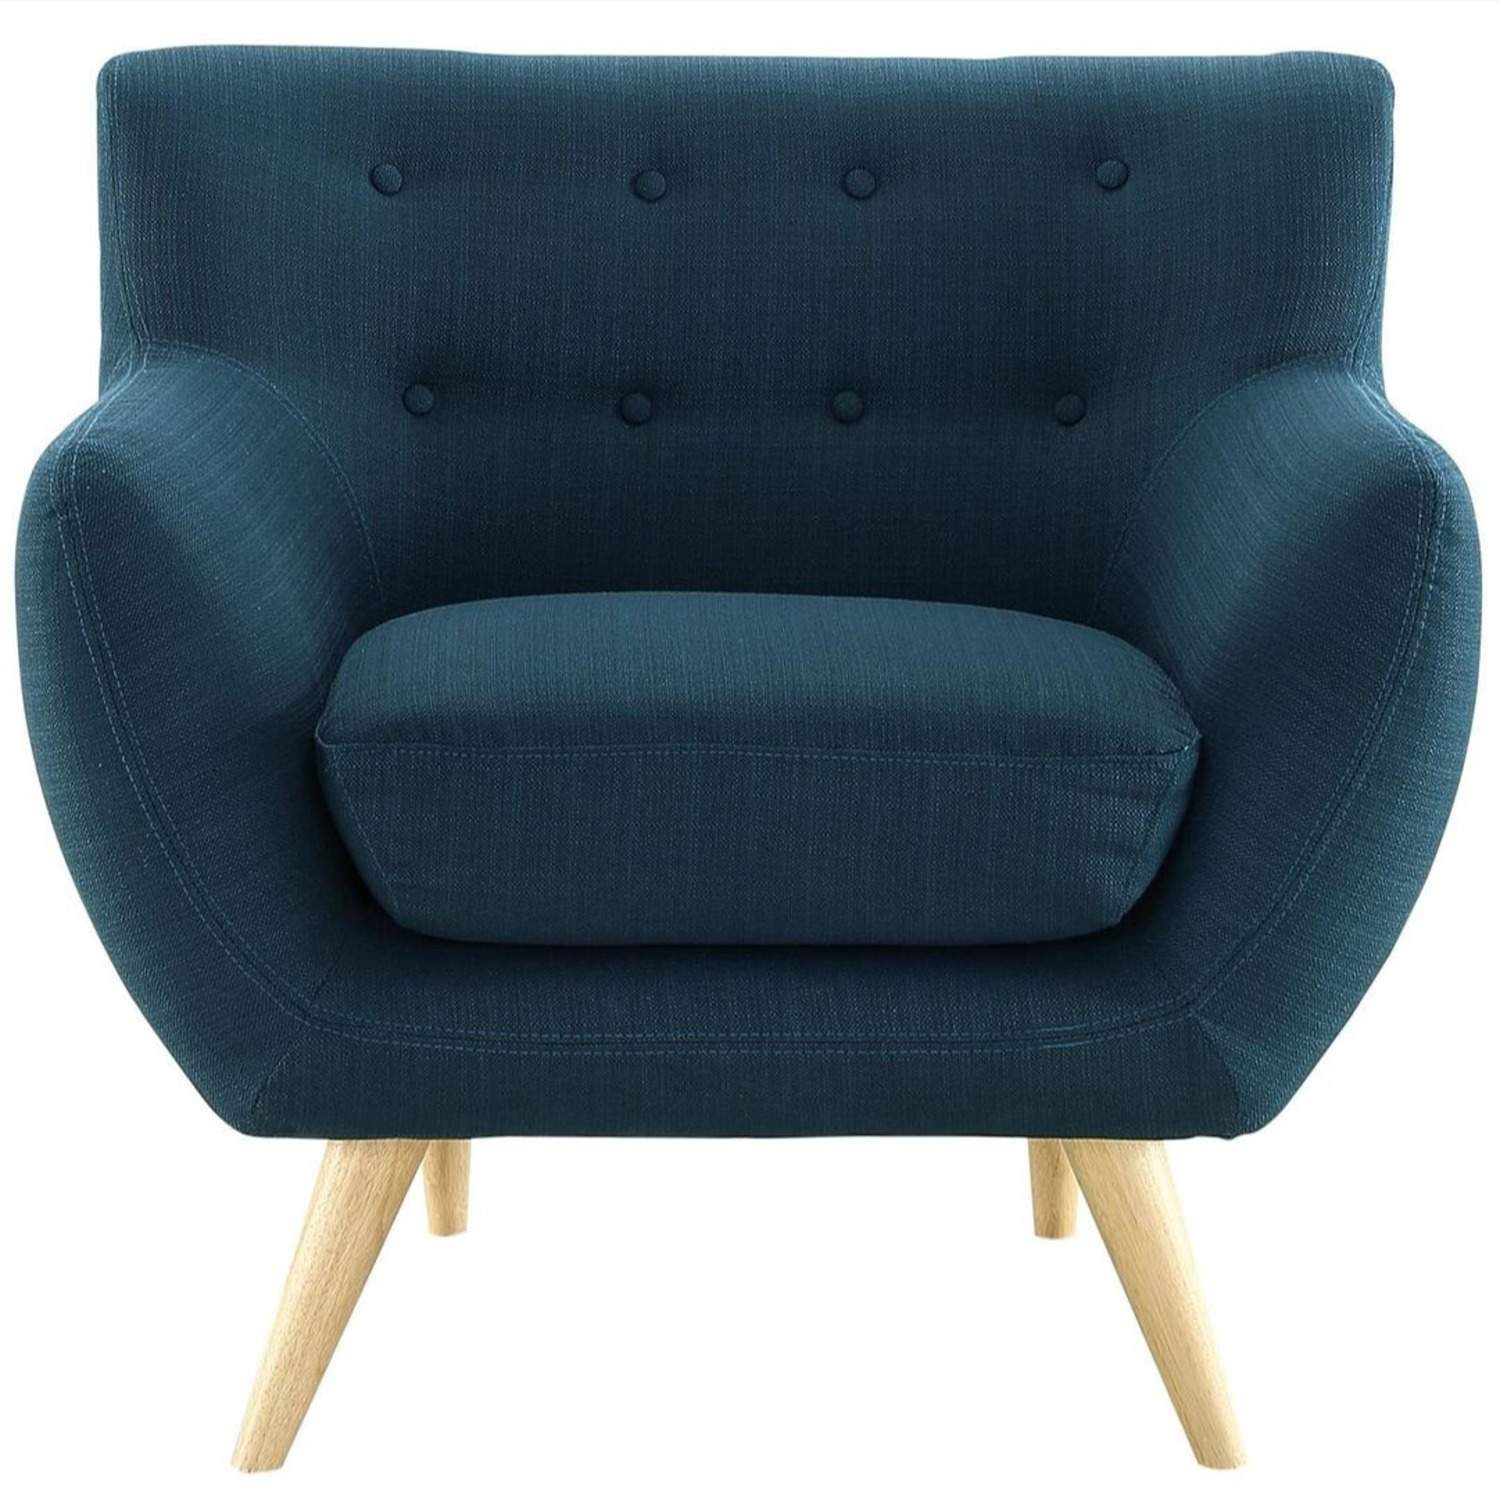 Armchair In Azure Upholstery W/ Natural Wood Legs - image-0